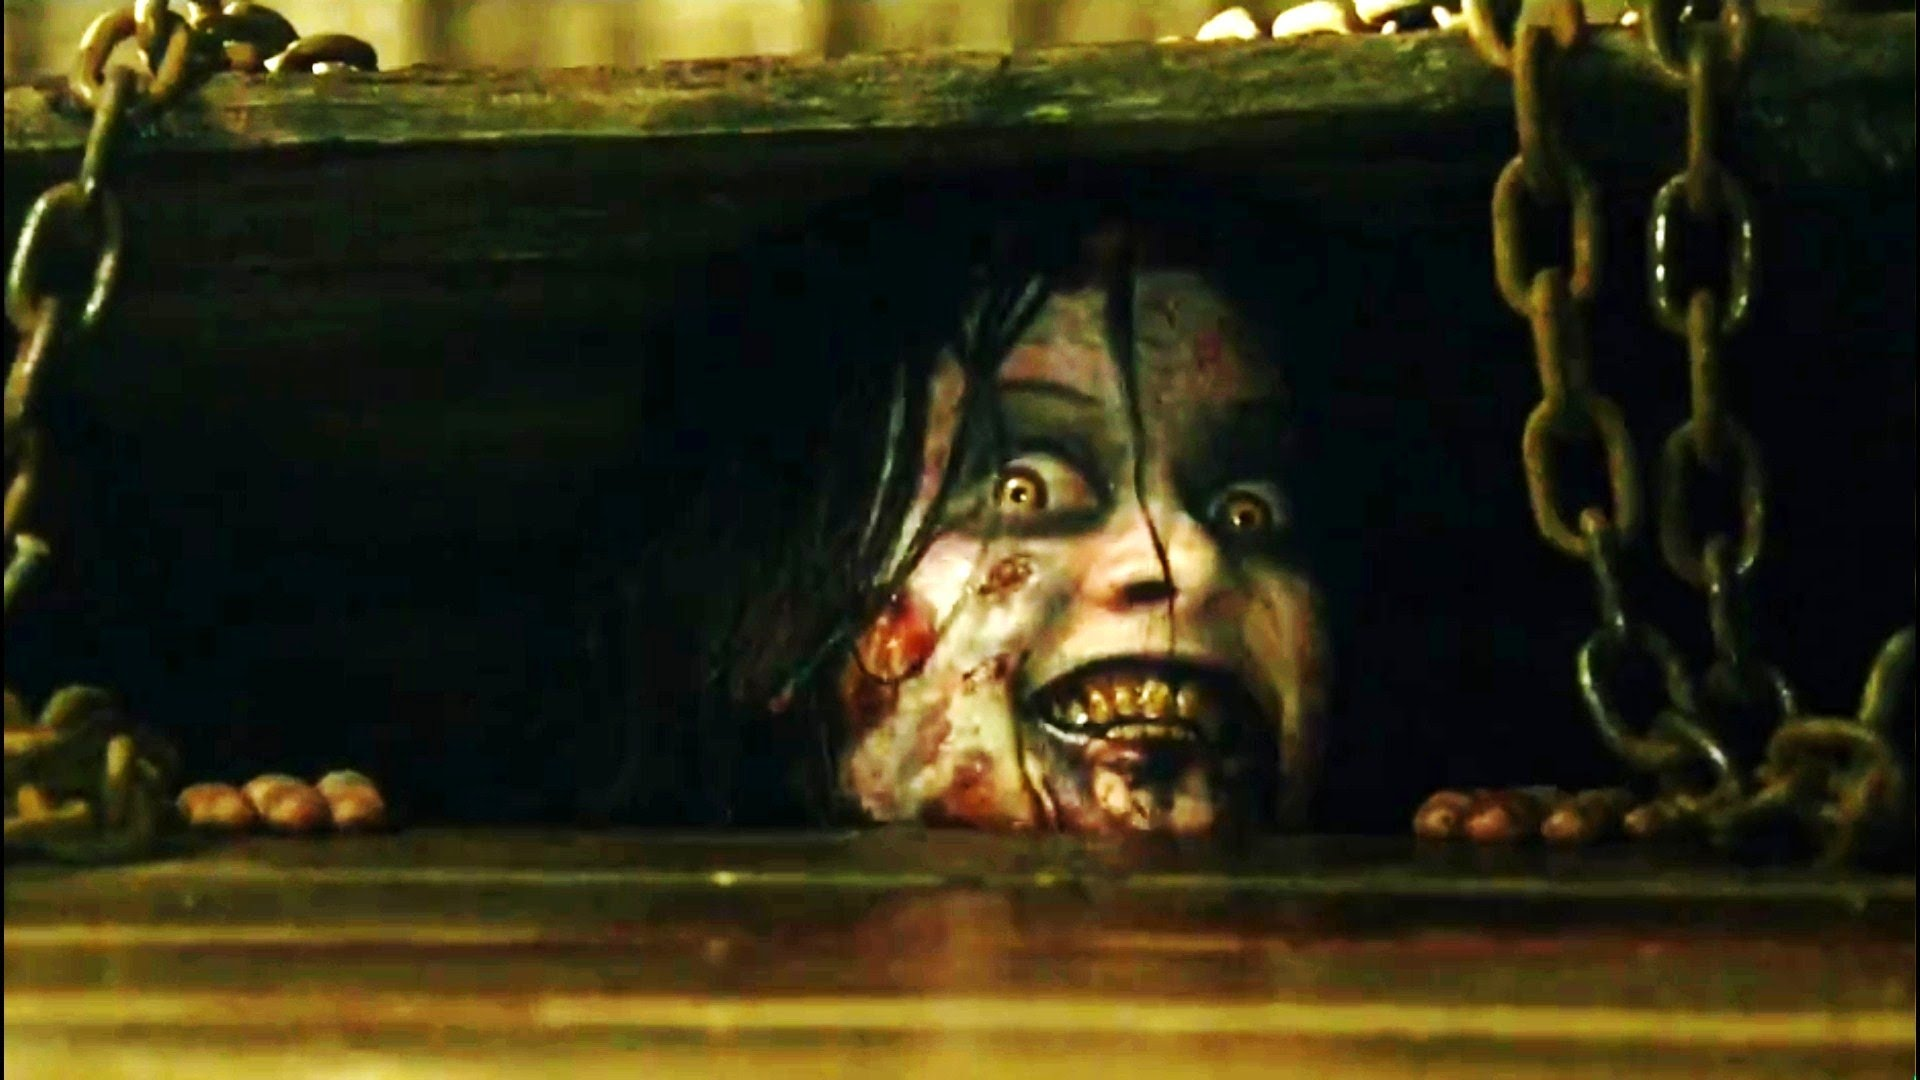 Reviews Of Mattresses EVIL DEAD (2013) is Worthless Garbage - PopHorror